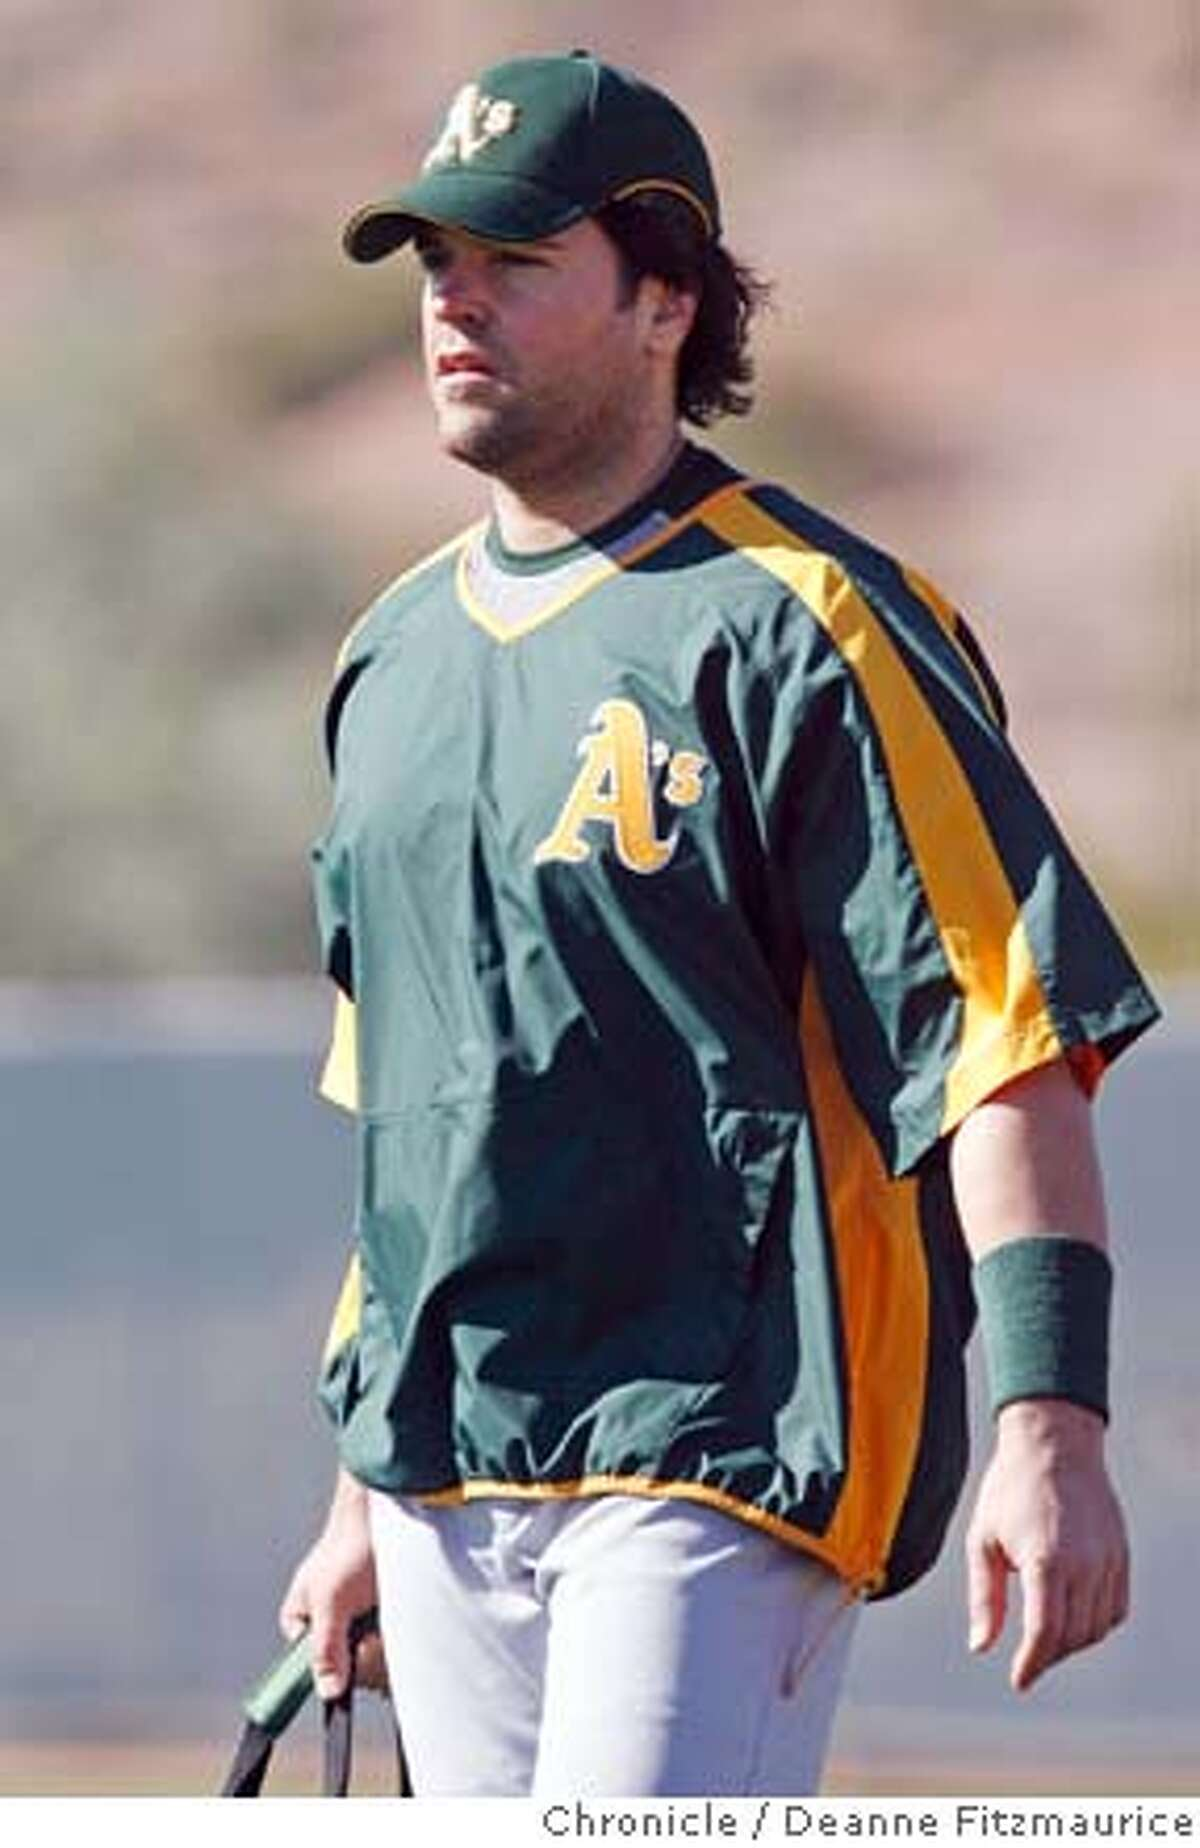 athletics_165_df.jpg Mike Piazza arrives at spring training for the Oakland A's. The Oakland Athletics have a spring training workout at Papago Park. Photographed in Phoenix on 2/22/07. Chronicle Photo / Deanne Fitzmaurice Mandatory credit for photographer and San Francisco Chronicle. No Sales/Magazines out.